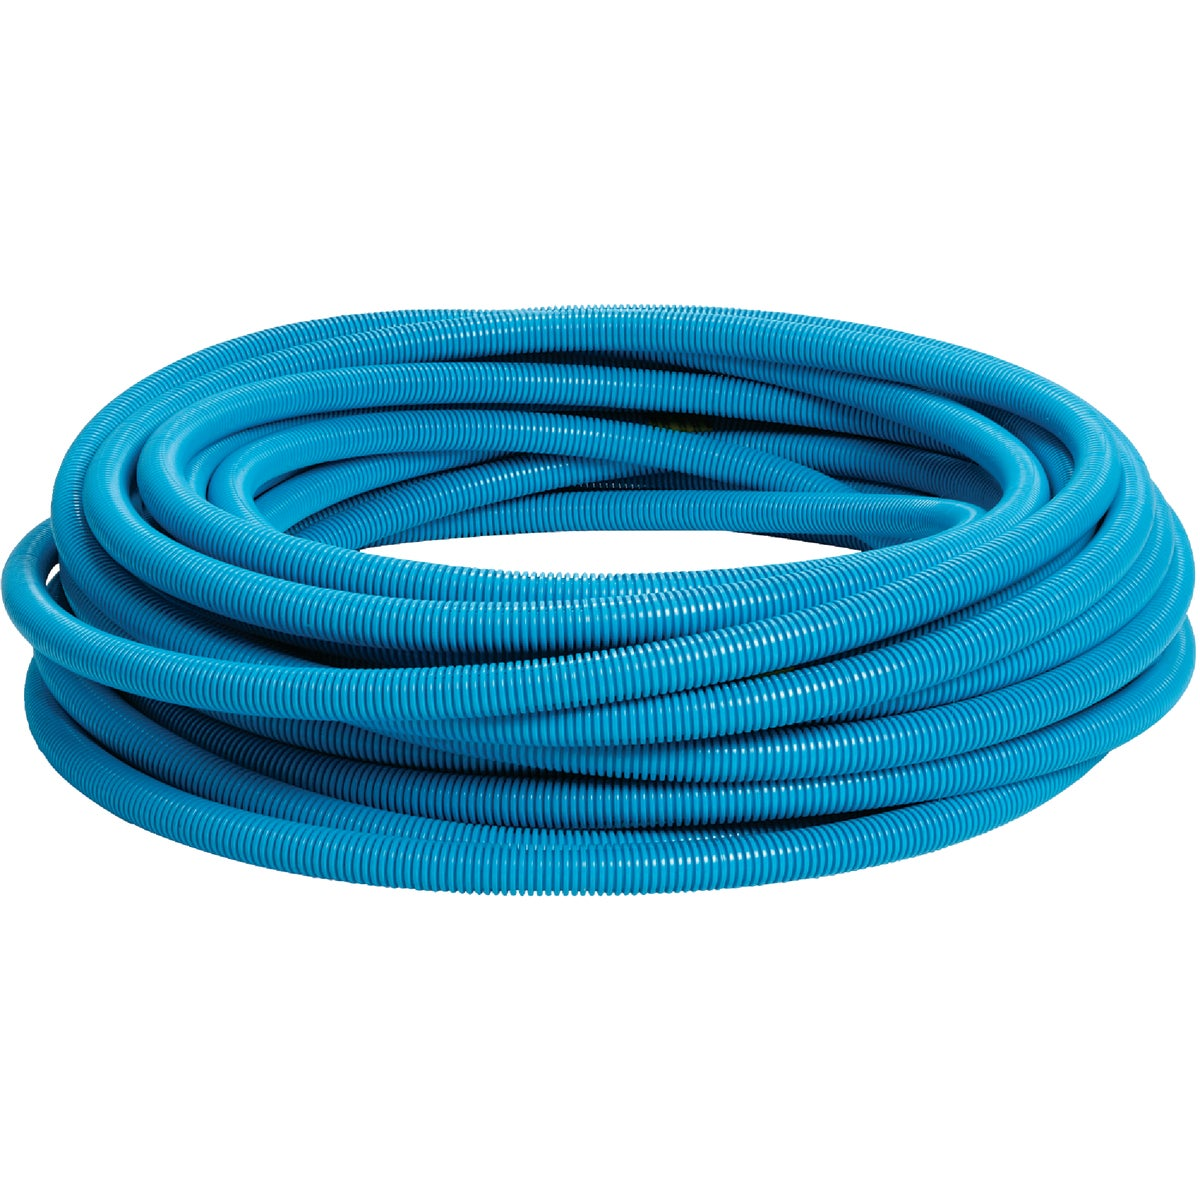 "200' 1/2"" FLEX CONDUIT - 12005-200 by Thomas & Betts"